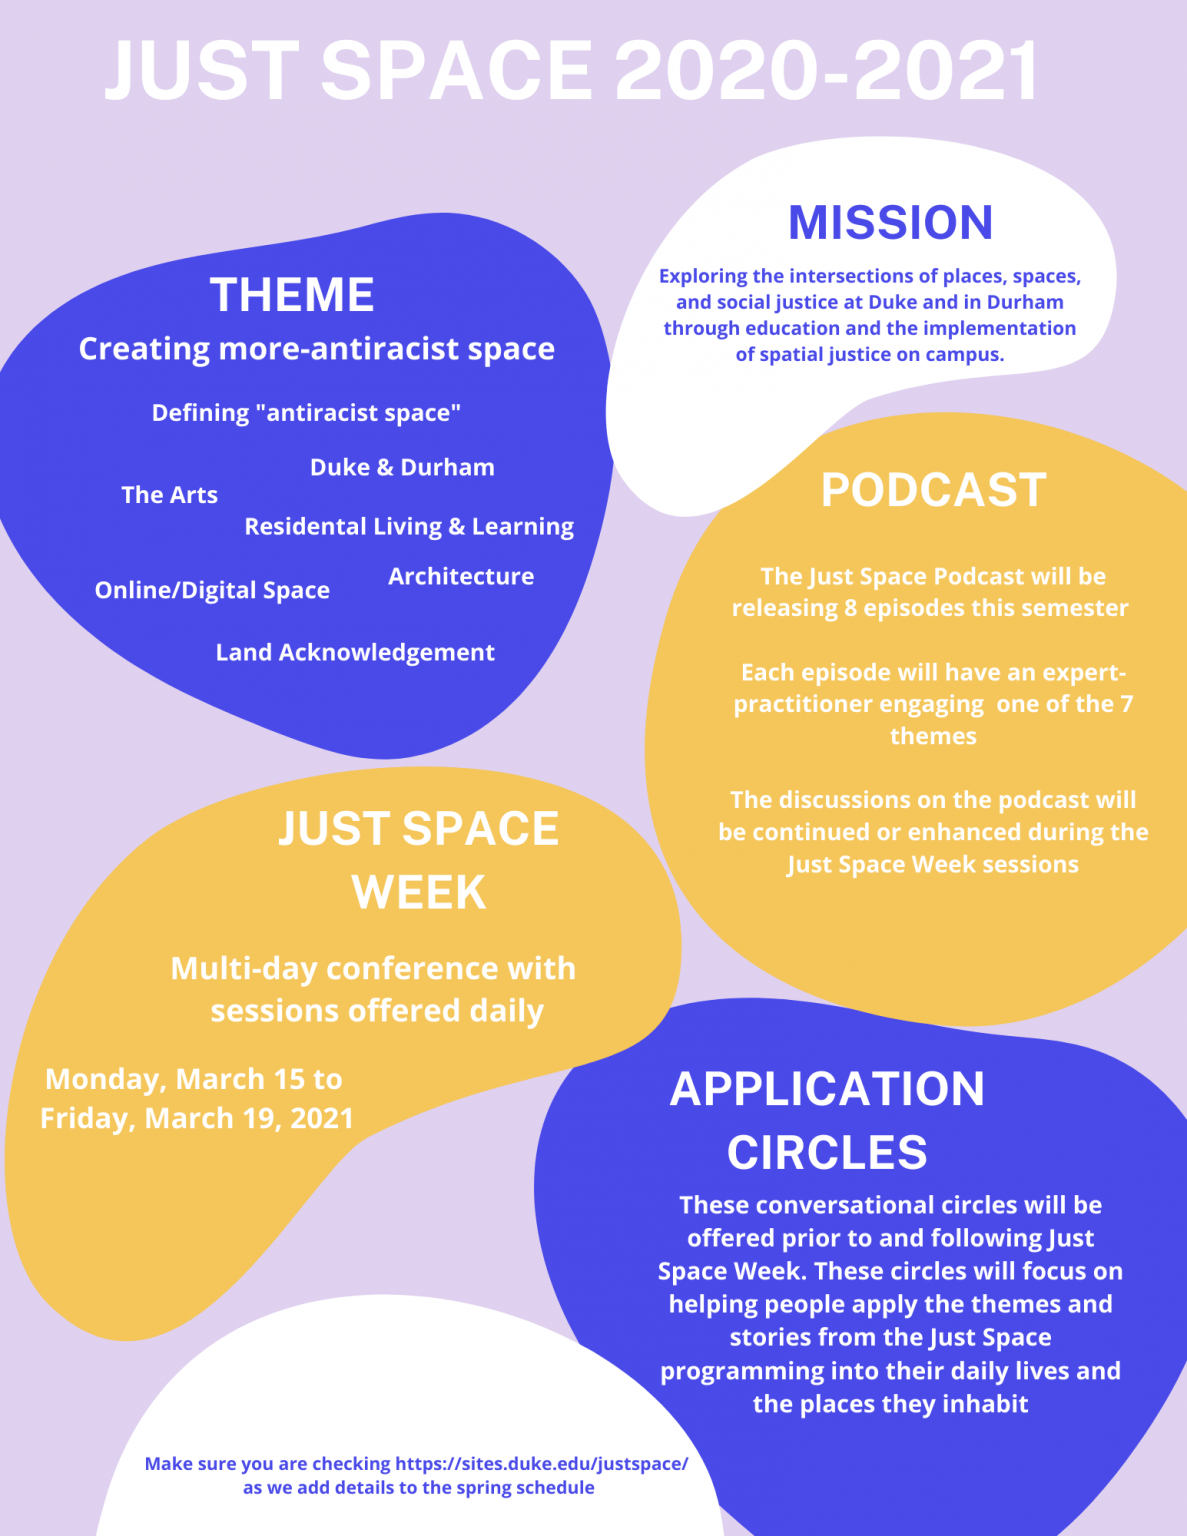 JustSpace image blob including desscription of theme, mission, and info on justspace week